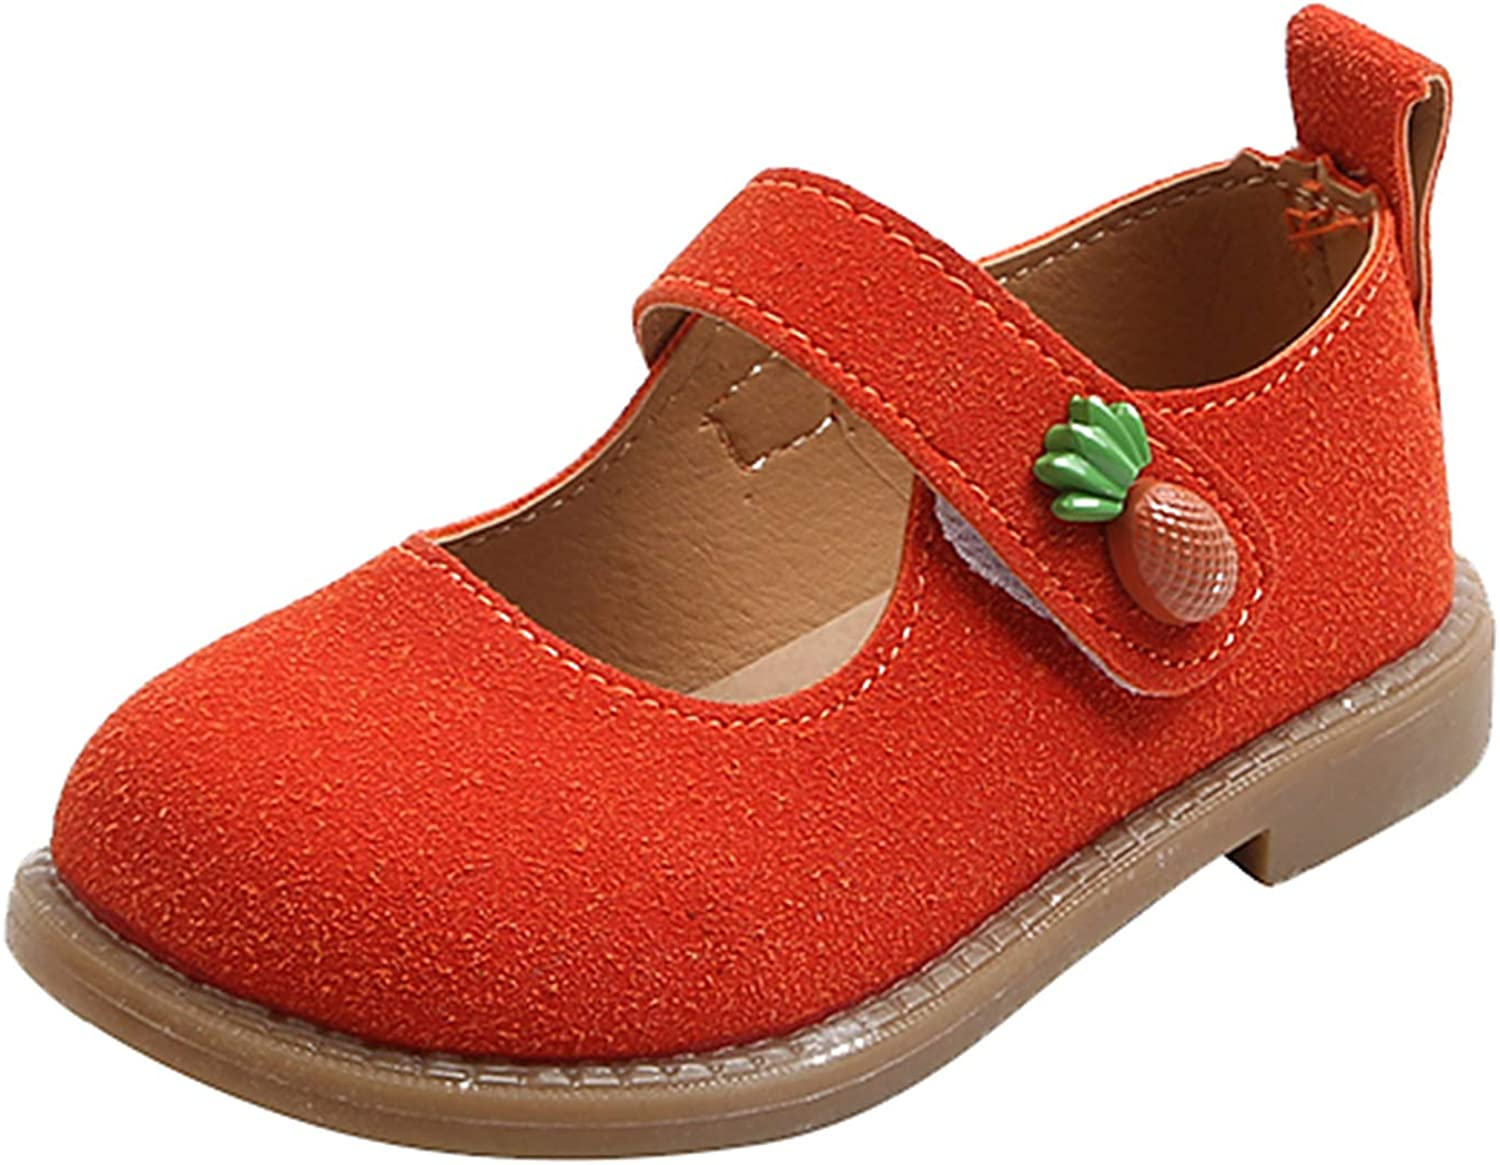 Baby Kids Girl Cute Flower Soft Non-Slip PU Party Regular discount Bottom Shoes L Max 67% OFF